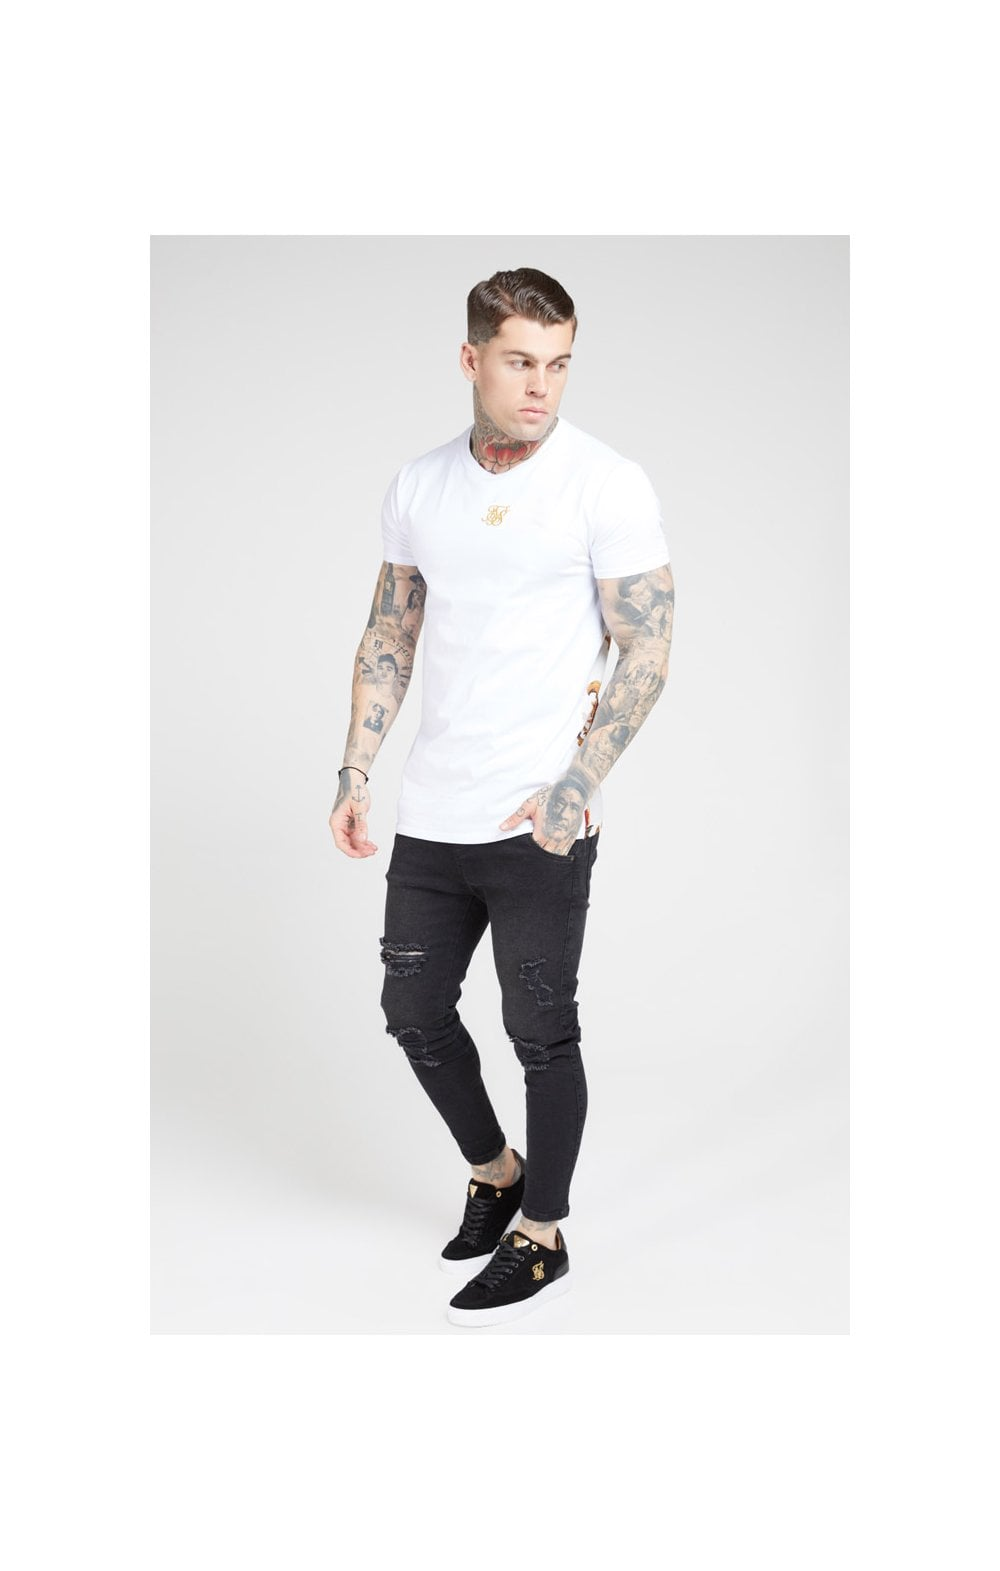 Load image into Gallery viewer, SikSilk S/S Reverse Collar Tee – White & Floral Elegance (2)